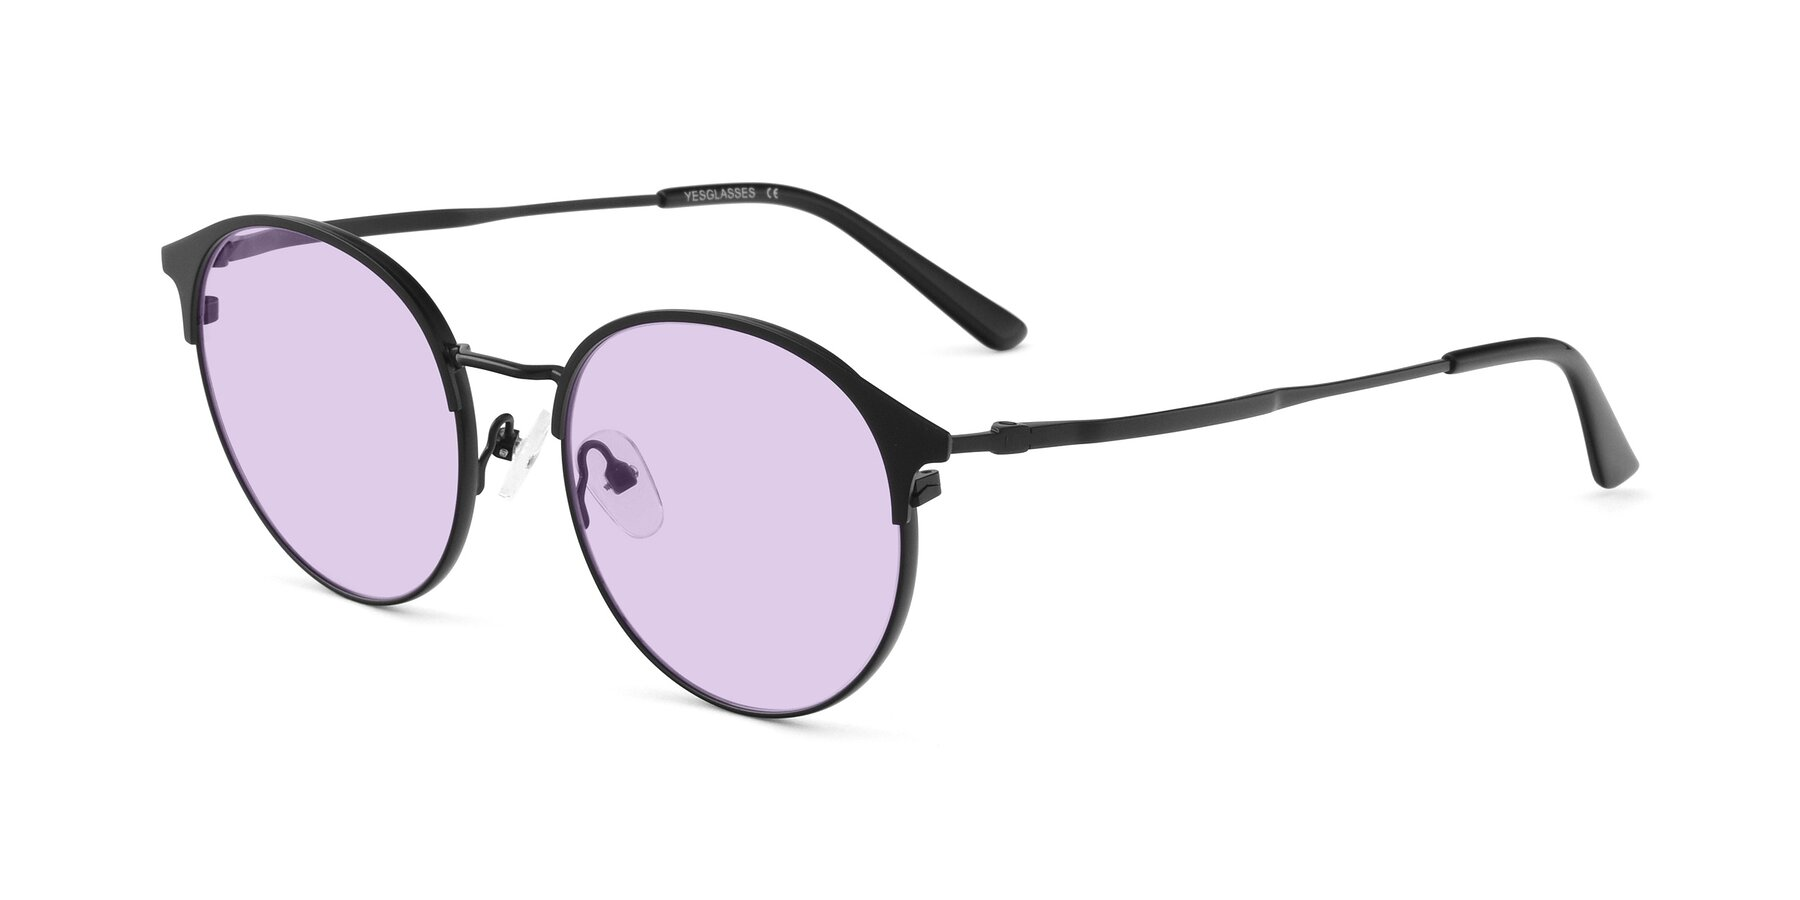 Angle of Berkley in Matte Black with Light Purple Tinted Lenses